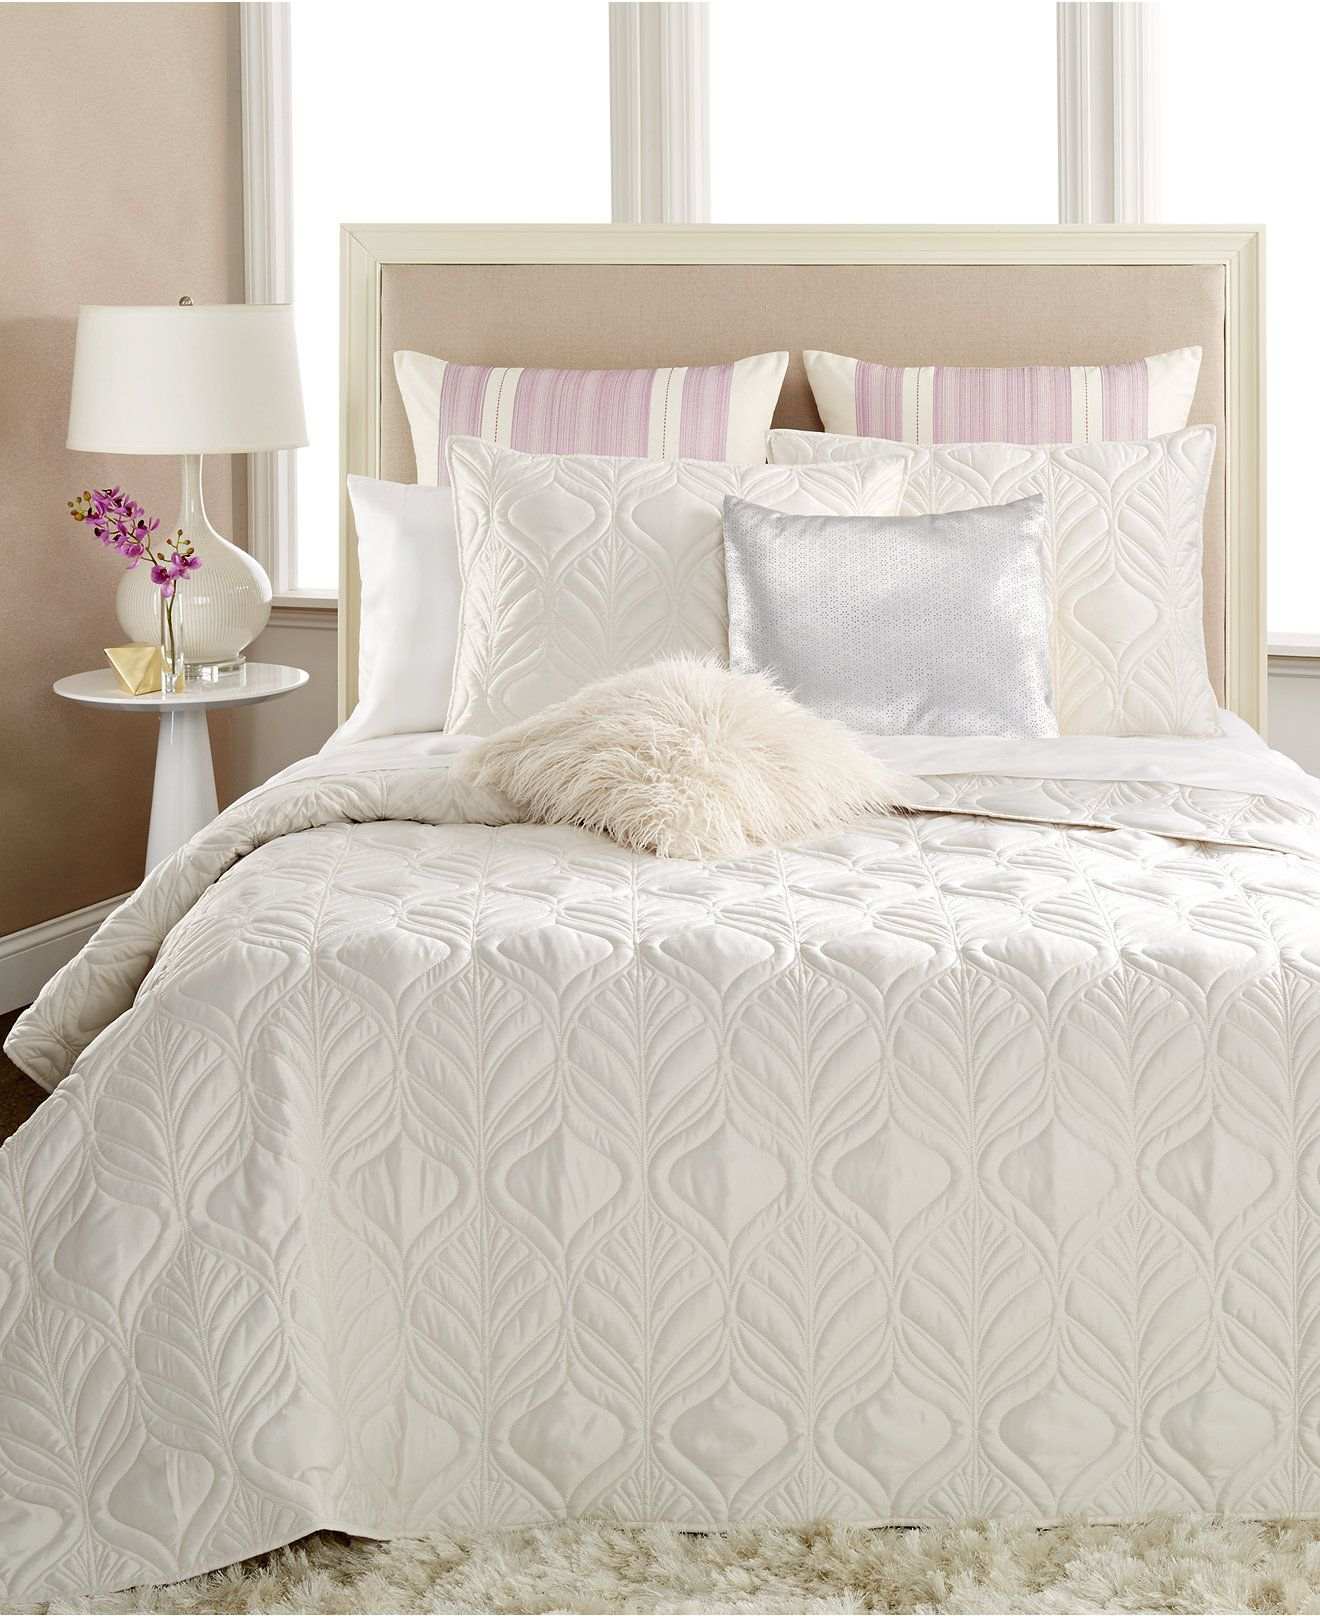 Inc International Concepts Gigi Coverlet Collection Quilts Bedspreads Bed Bath Macy S Bed Bedding Collections Bed Spreads